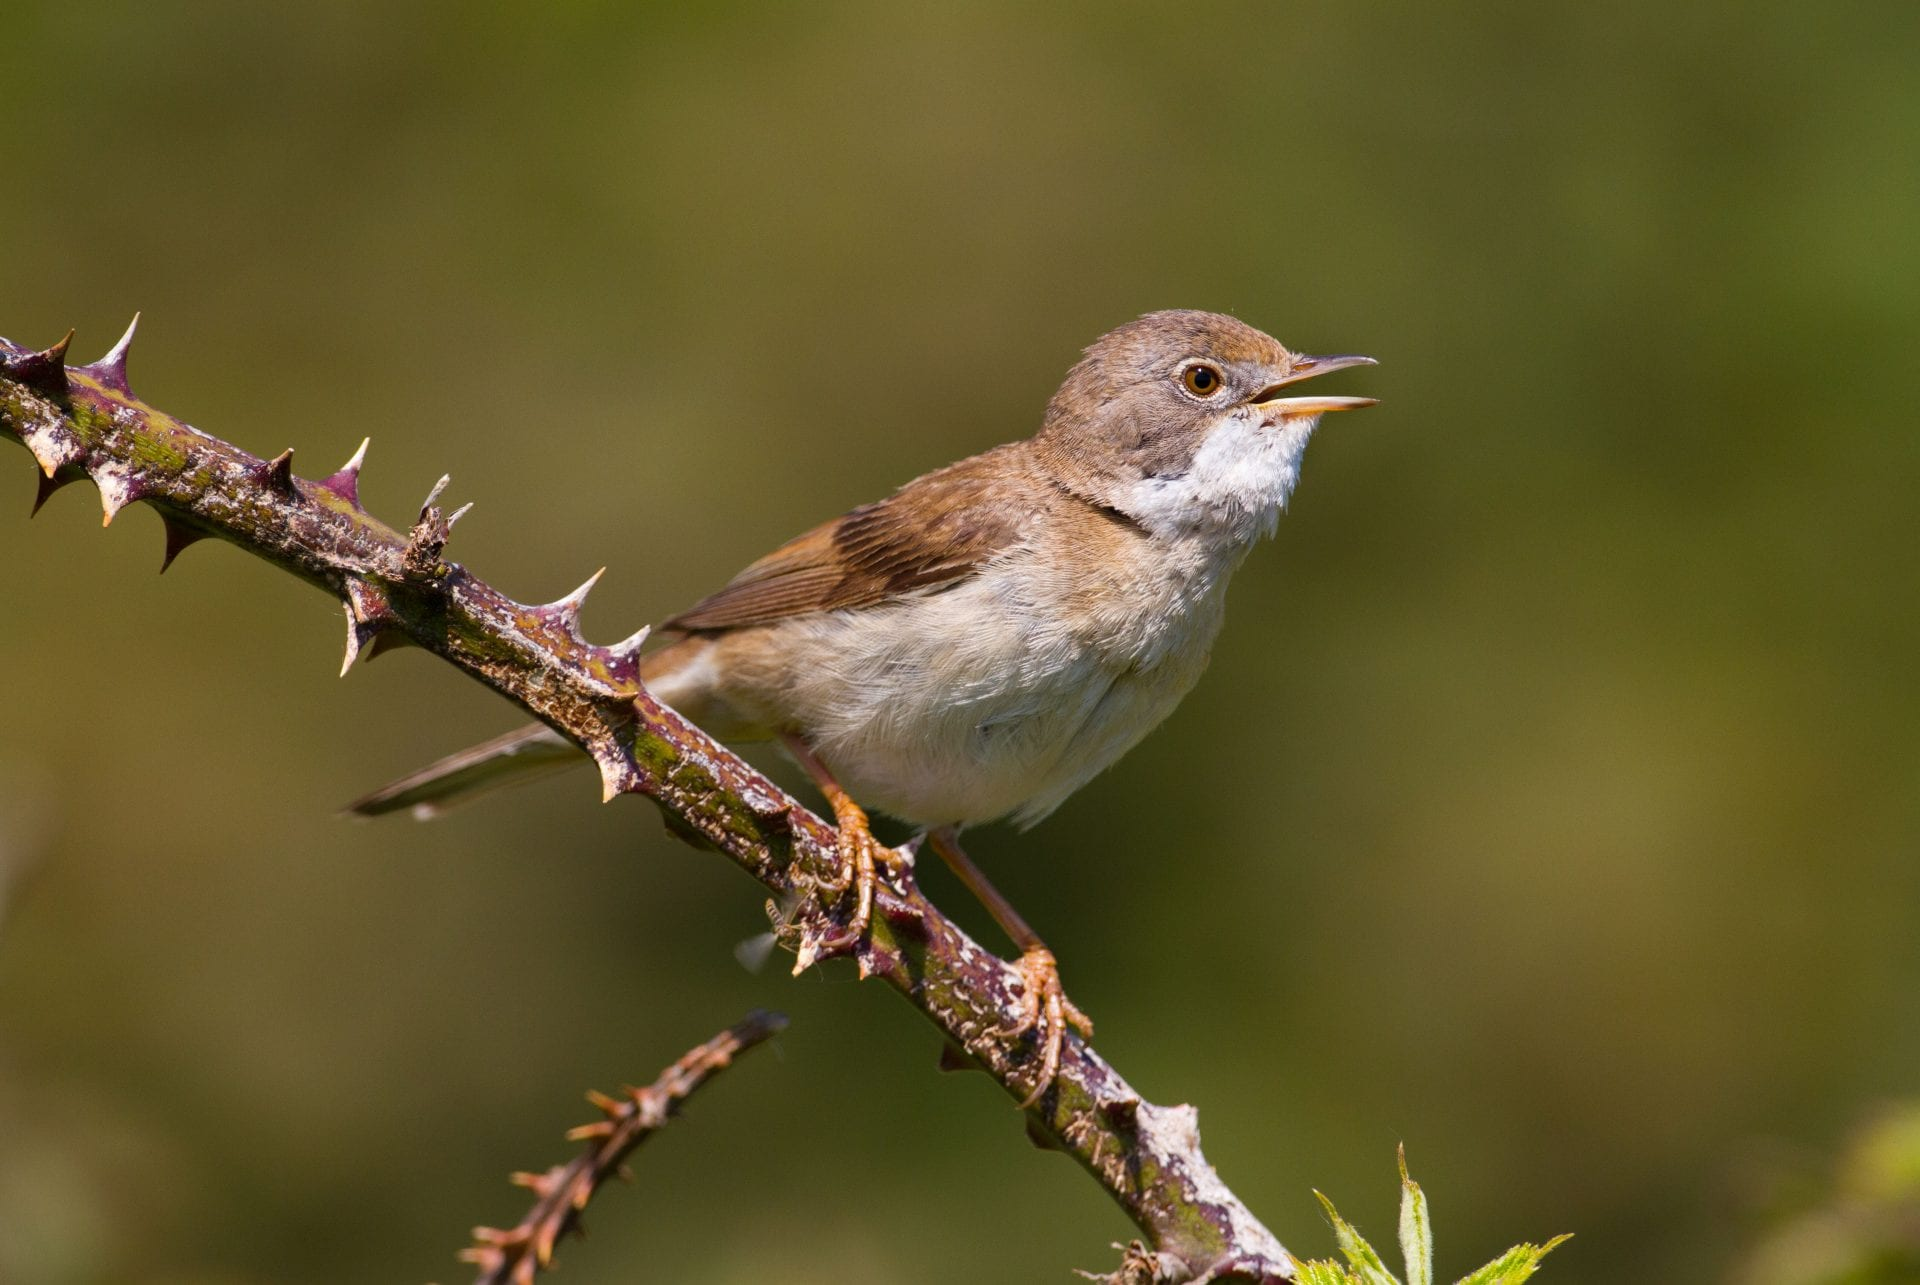 whitethroat-perched-on-bramble